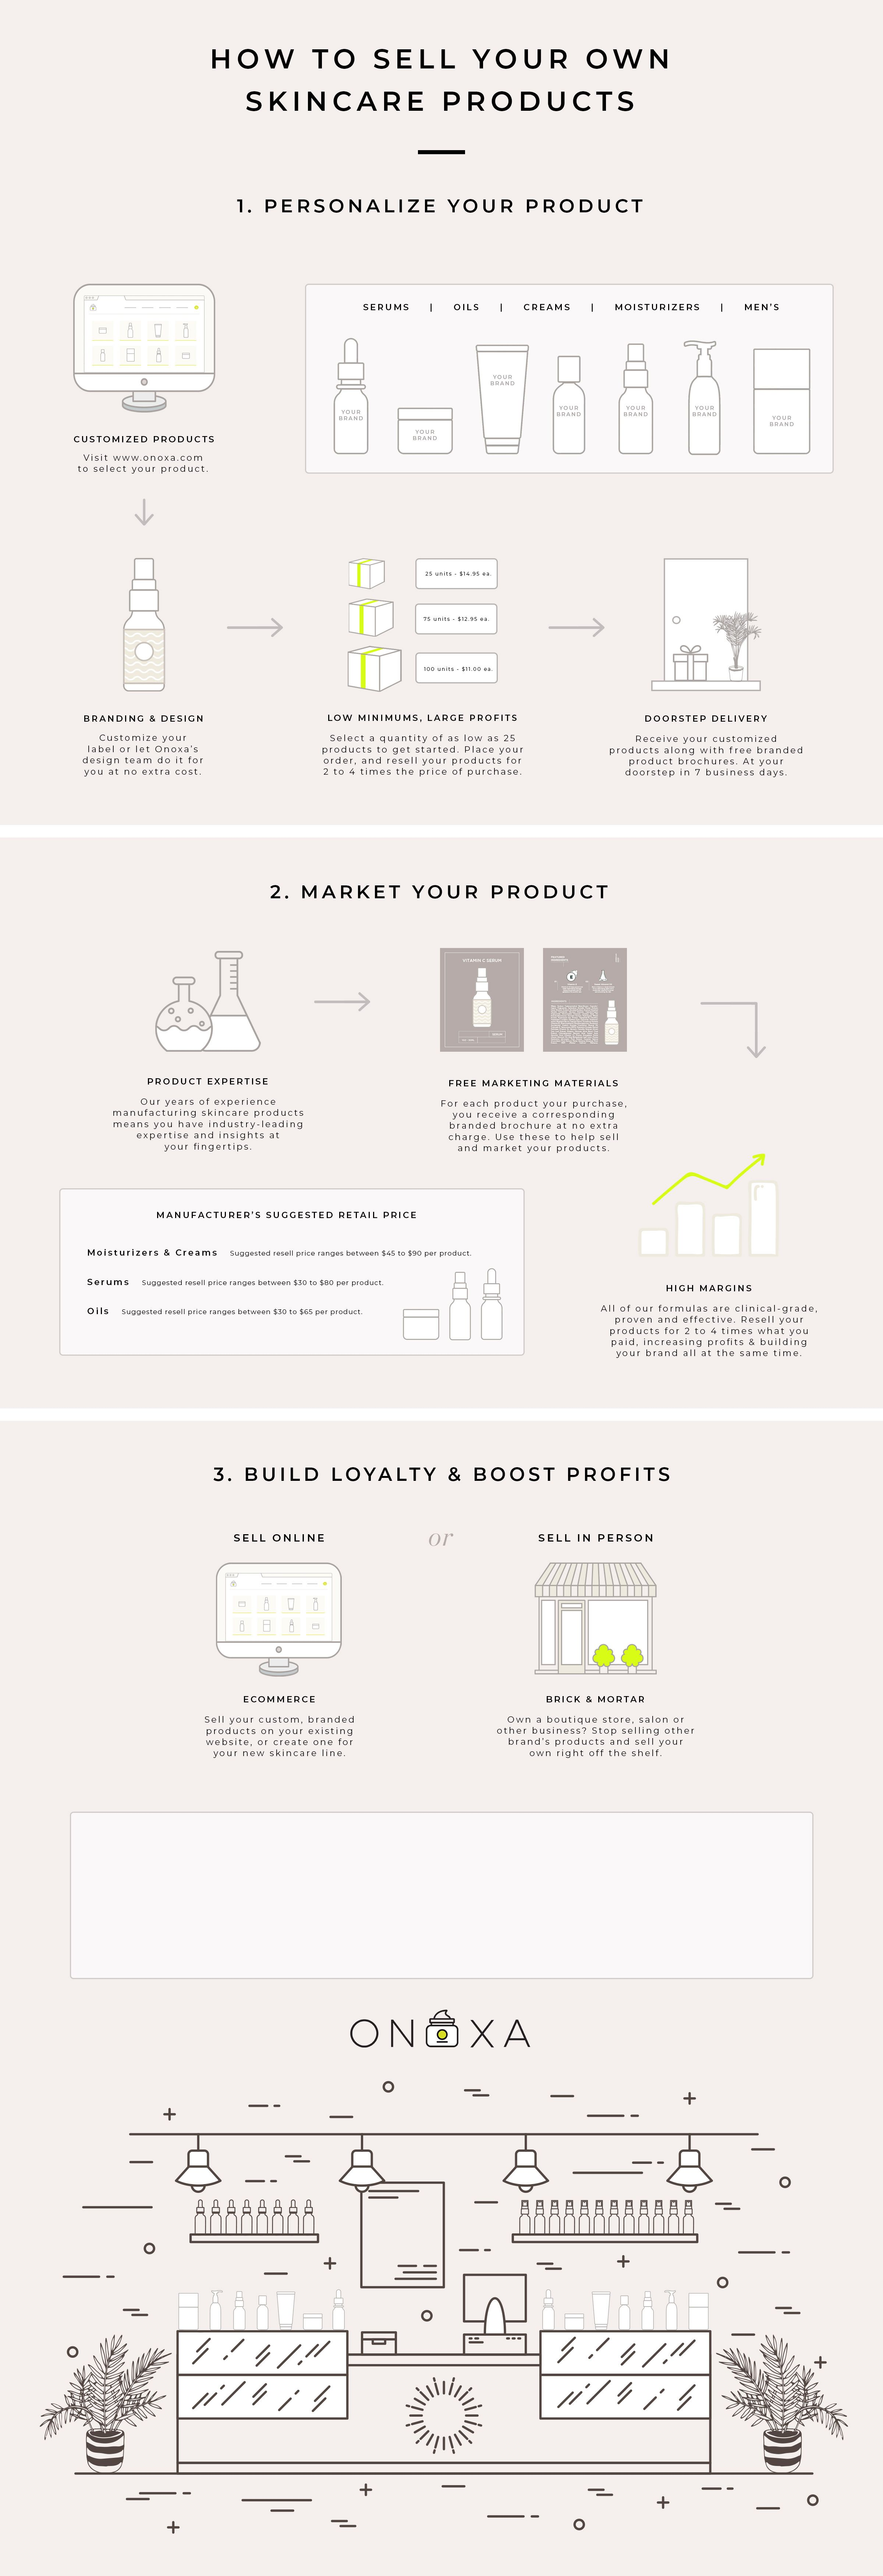 The Complete Guide To Creating Marketing Selling Your Own Line Of Personalized Branded Private Label Skincare P Skin Care Brands Skin Care Beauty Skin Care